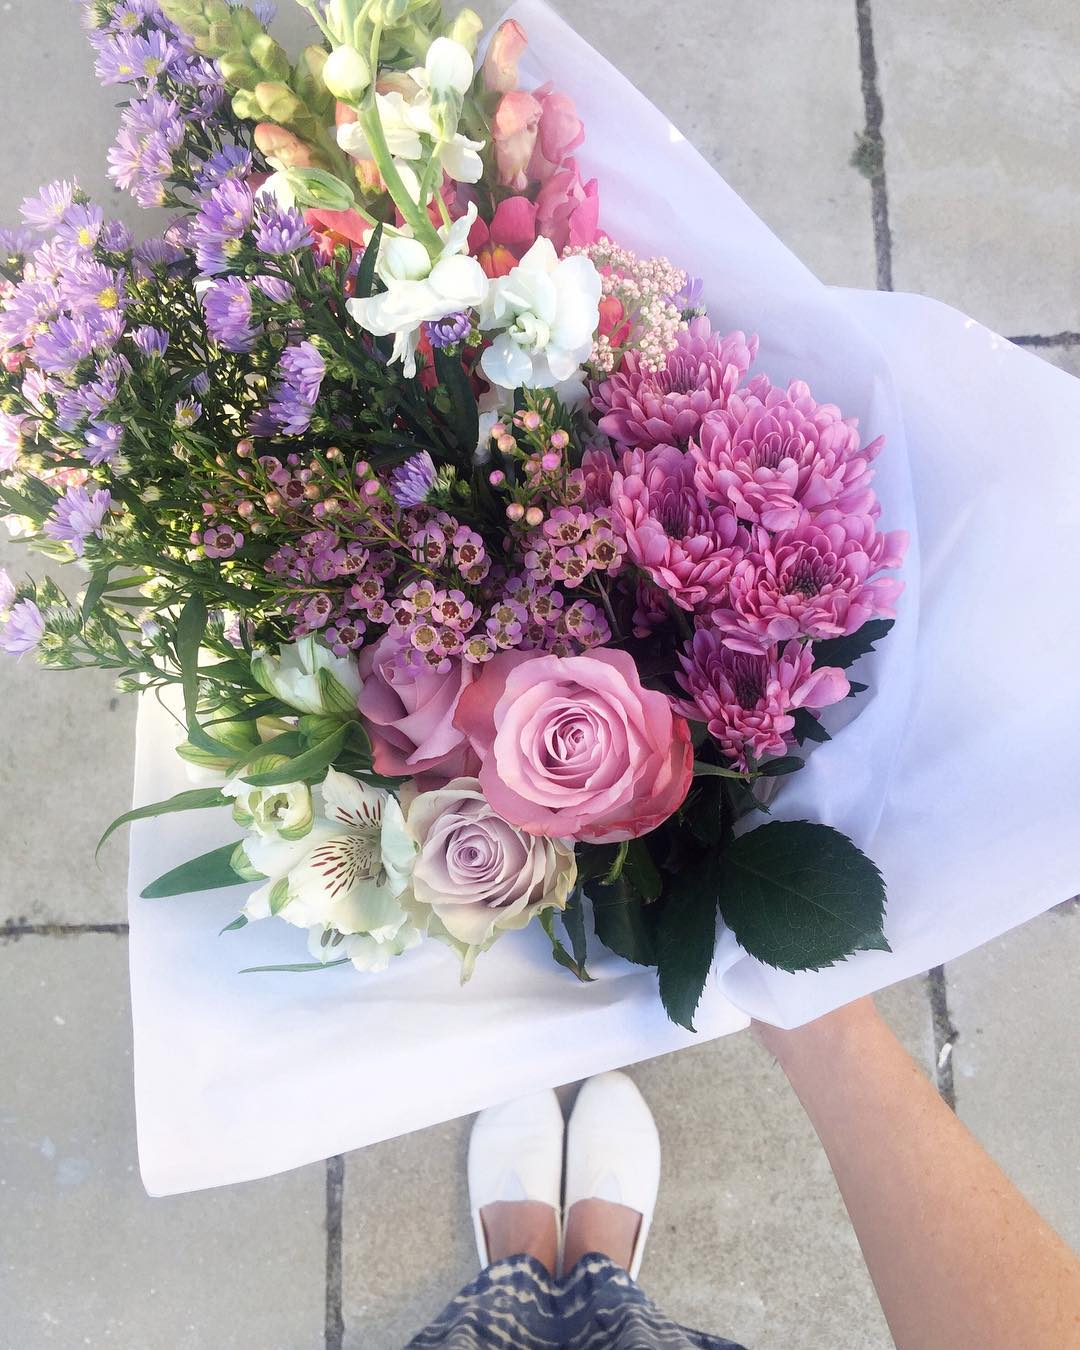 Ahhh it's Friday 🎉Today's Posy smells delicious! Pair it up with a @studiomelissalouise scented candle to help you relax into the weekend. Today's Posy is lilac and soft pink roses, with stocks, snapdragons, wax, sprays and rice flowers. Order online before 12:30pm for delivery this afternoon 🌿www.petalandpost.co.za